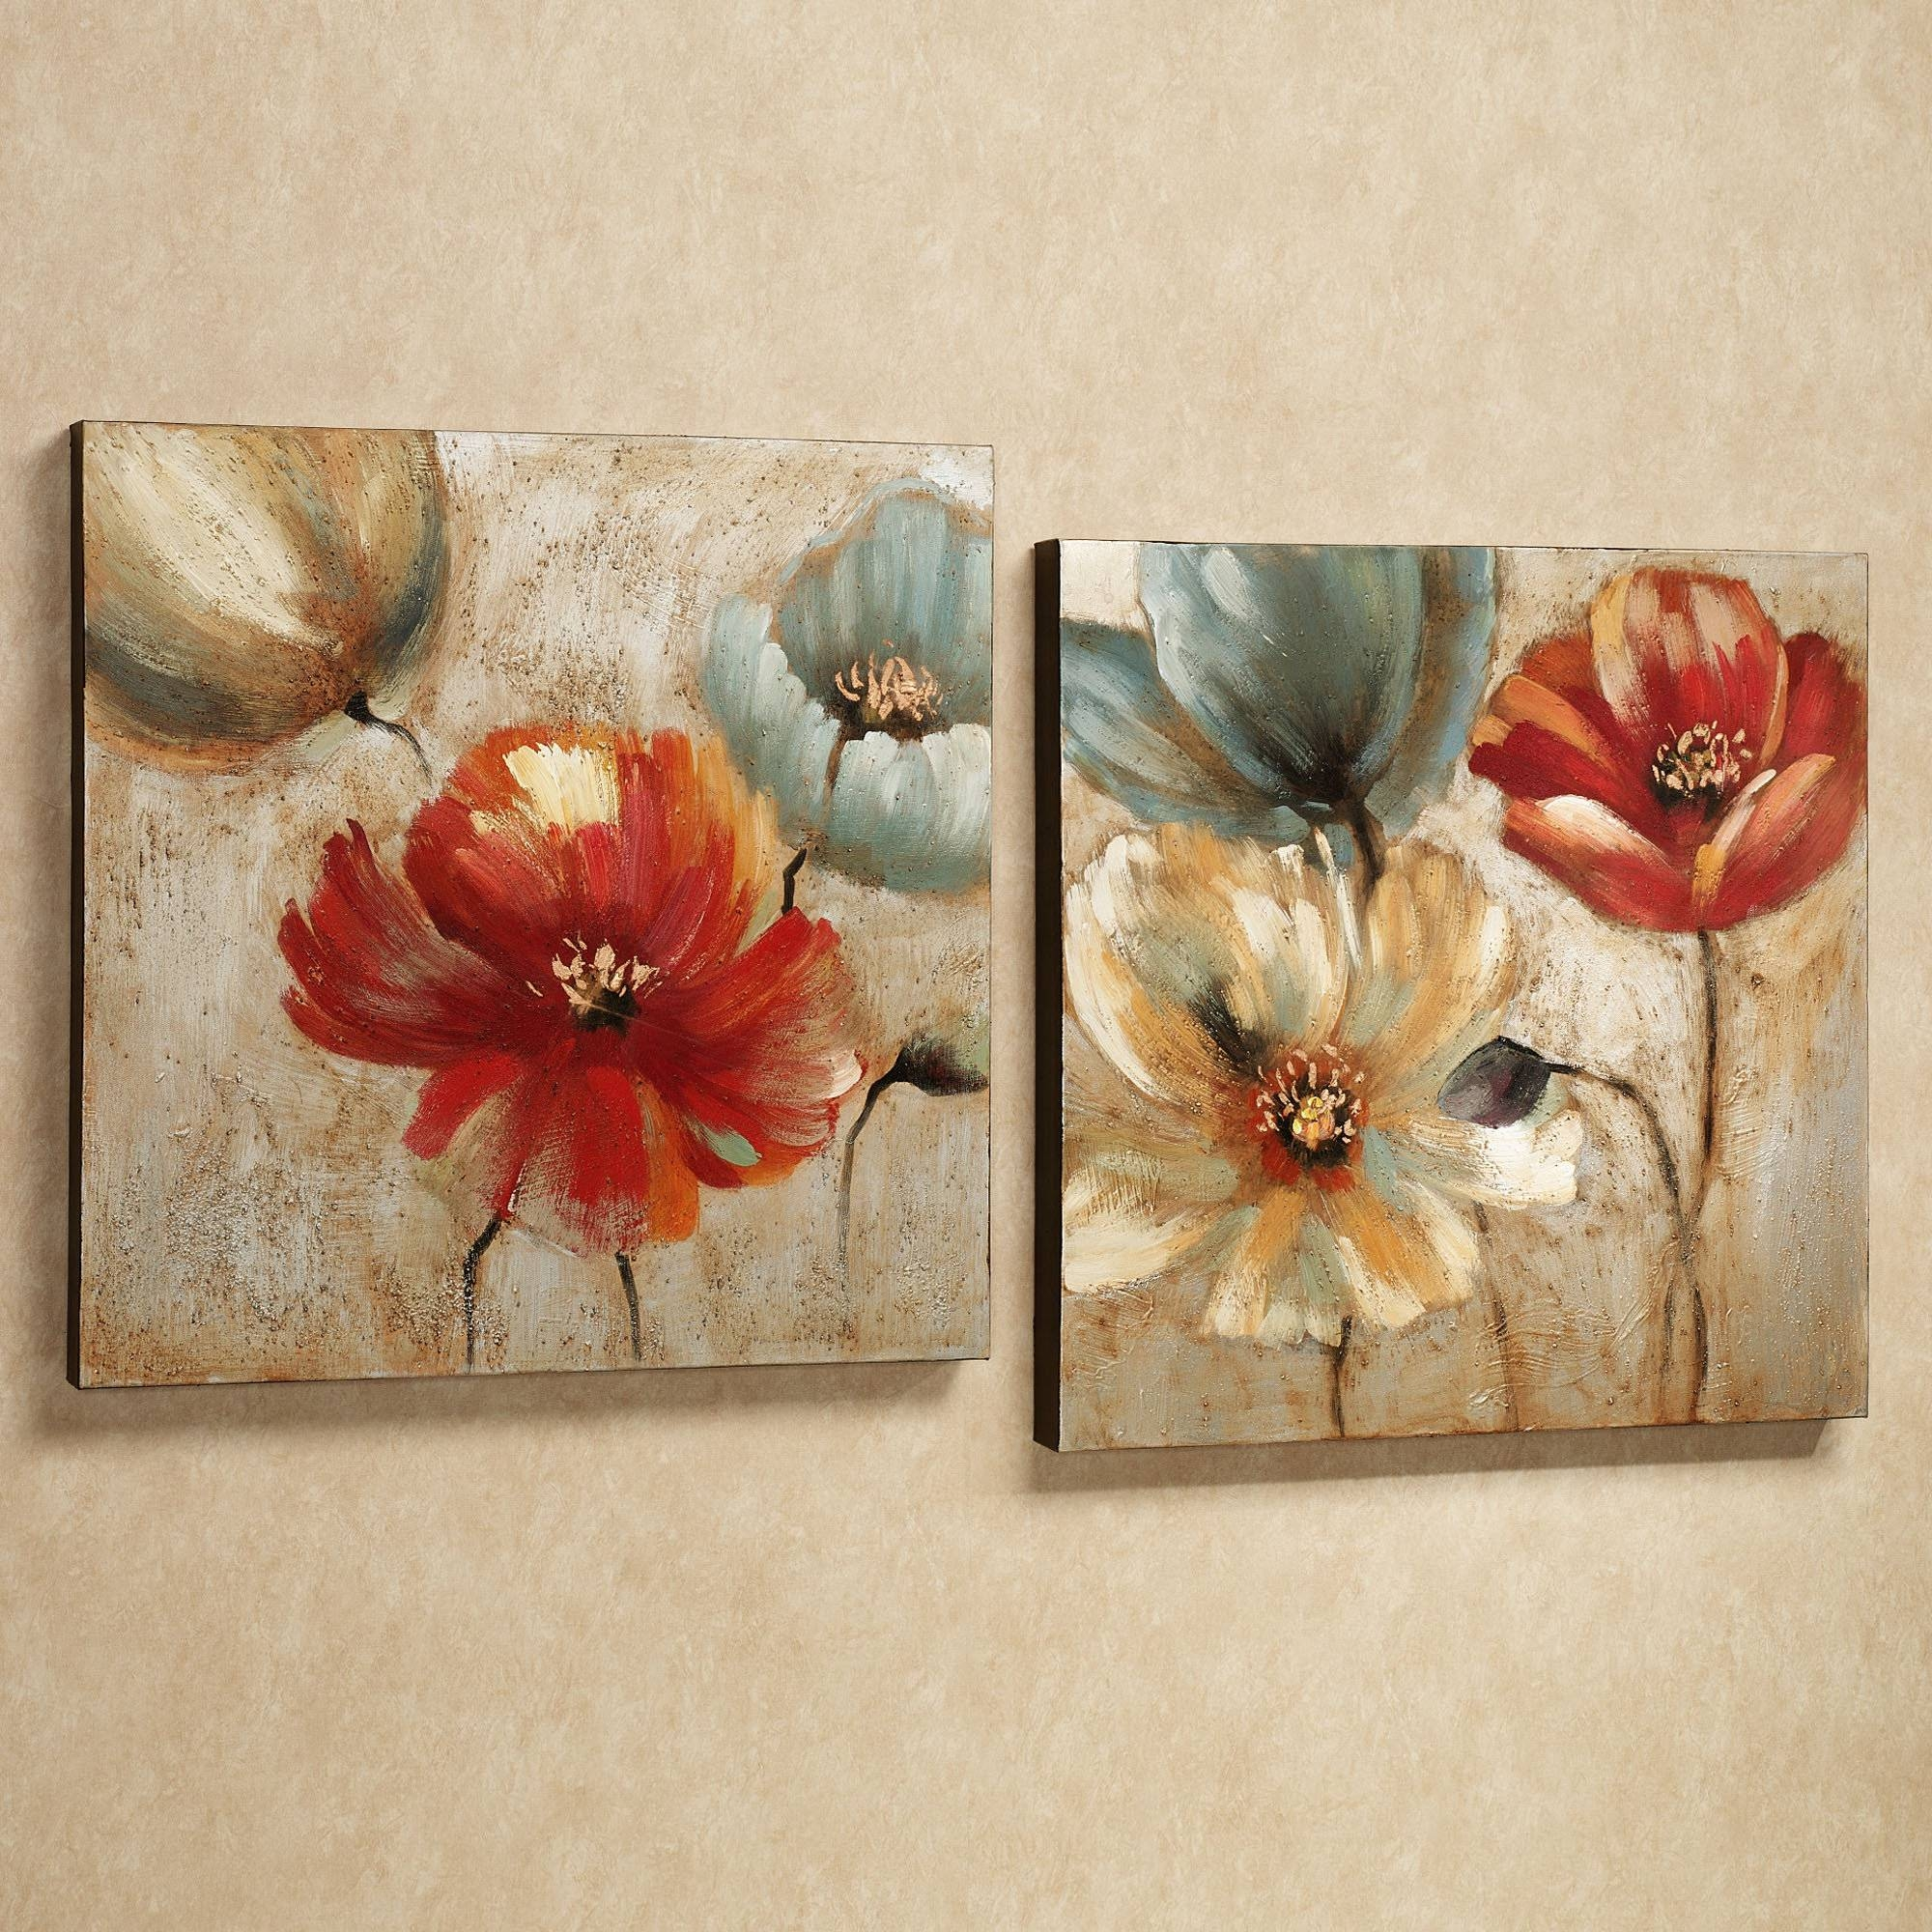 Wall Art Designs: Canvas Floral Wall Art Flowers Paintings Large Pertaining To Best And Newest Floral & Plant Wall Art (View 24 of 25)